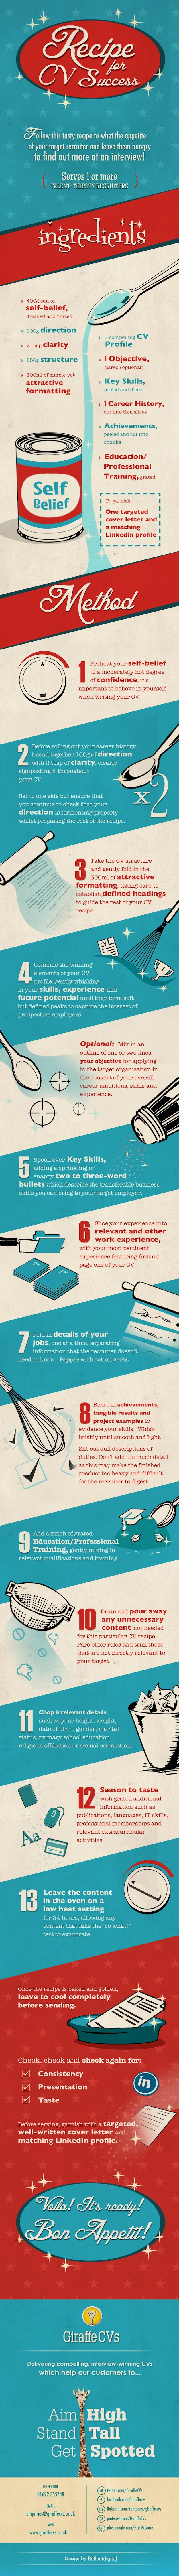 Infographic - Recipe for Success